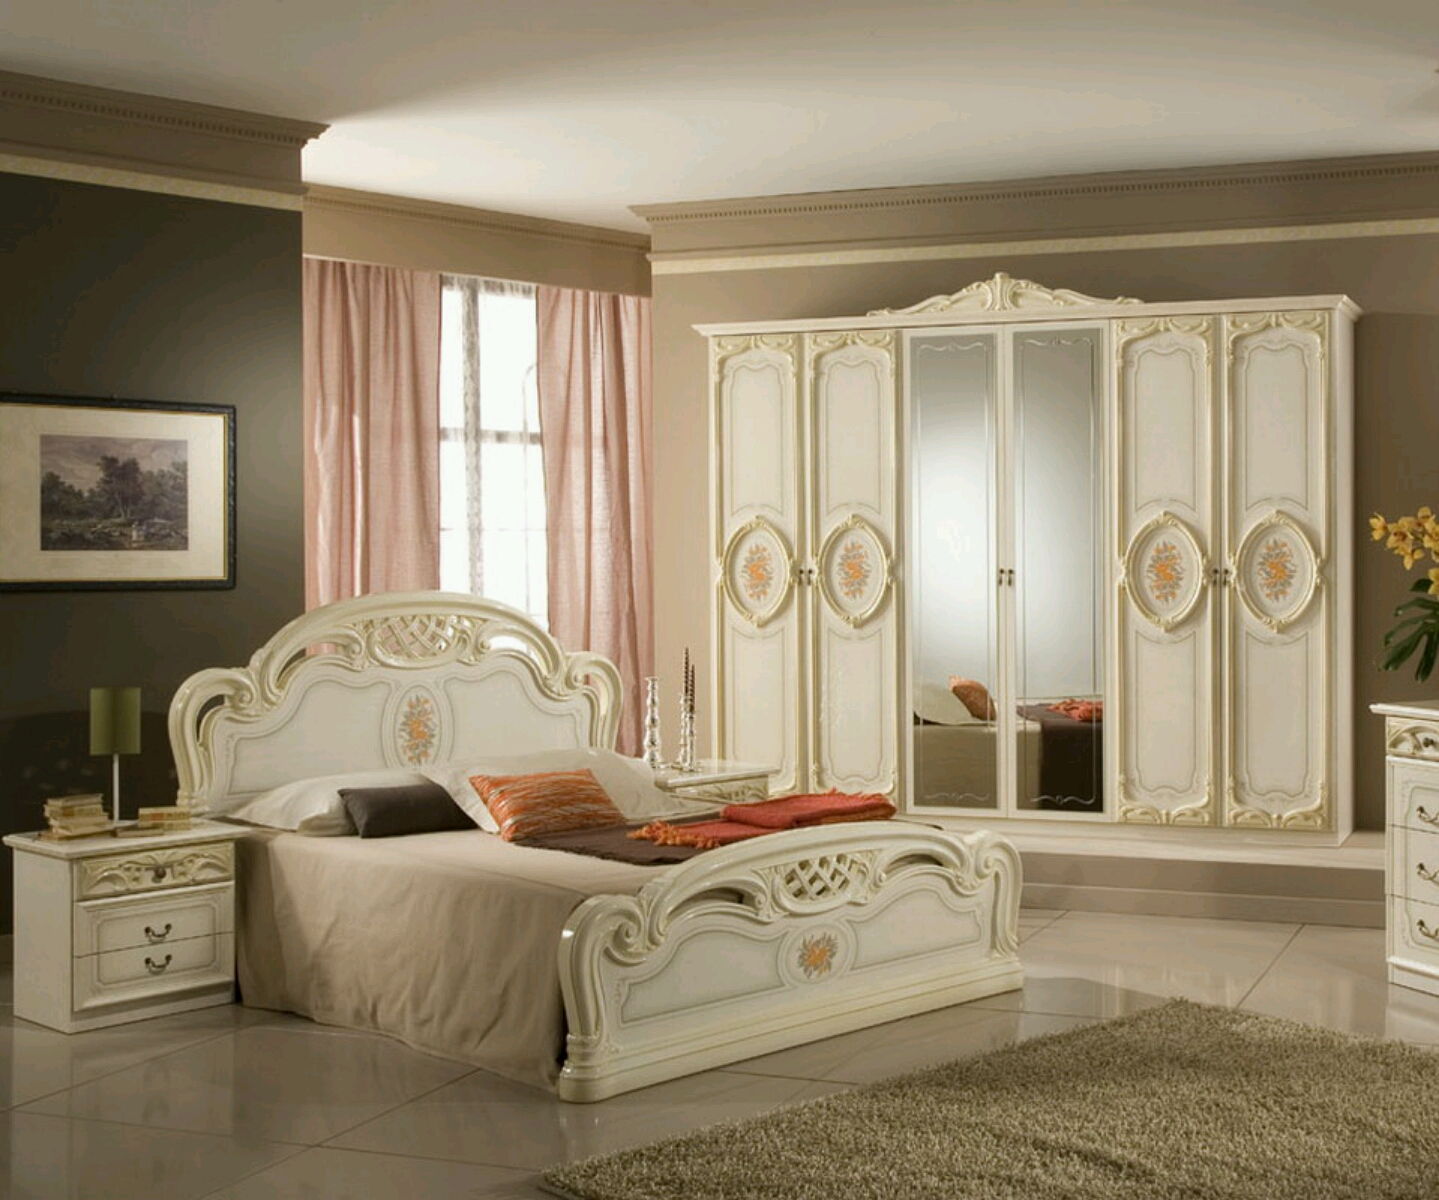 Modern luxury bedroom furniture designs ideas vintage for New furniture bedroom